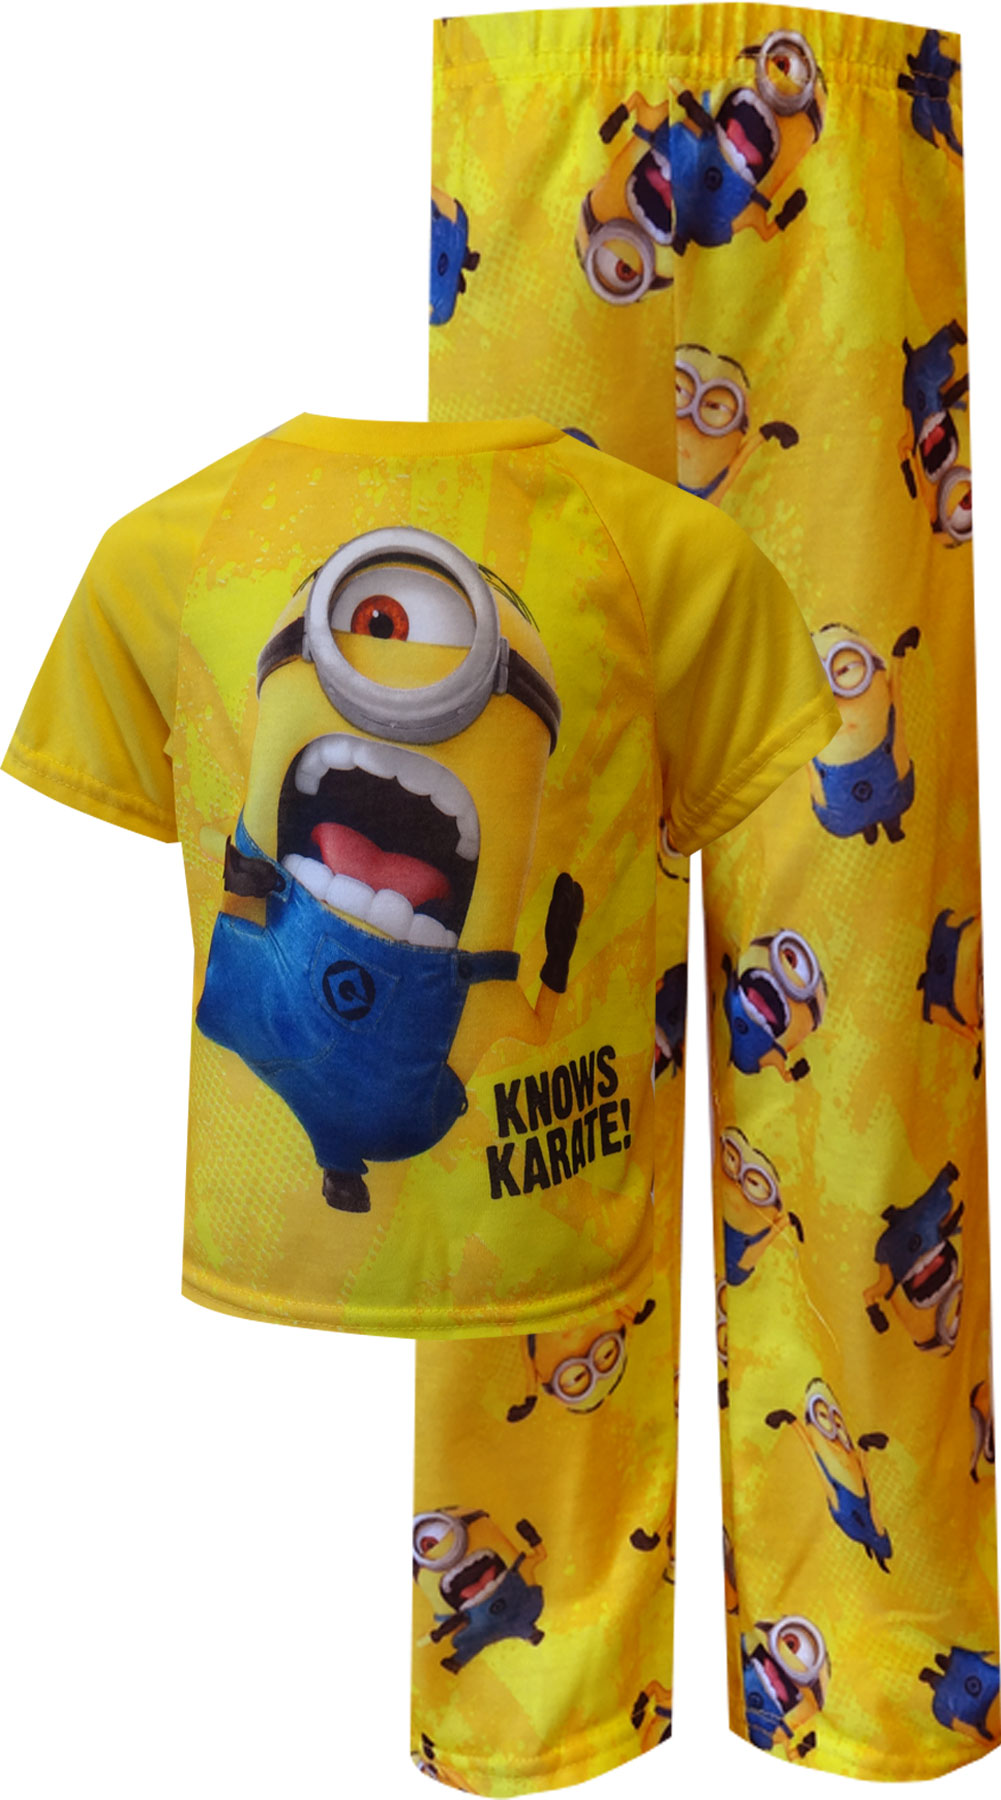 Image of Despicable Me 2 Minion Knows Karate Toddler Pajamas for boys